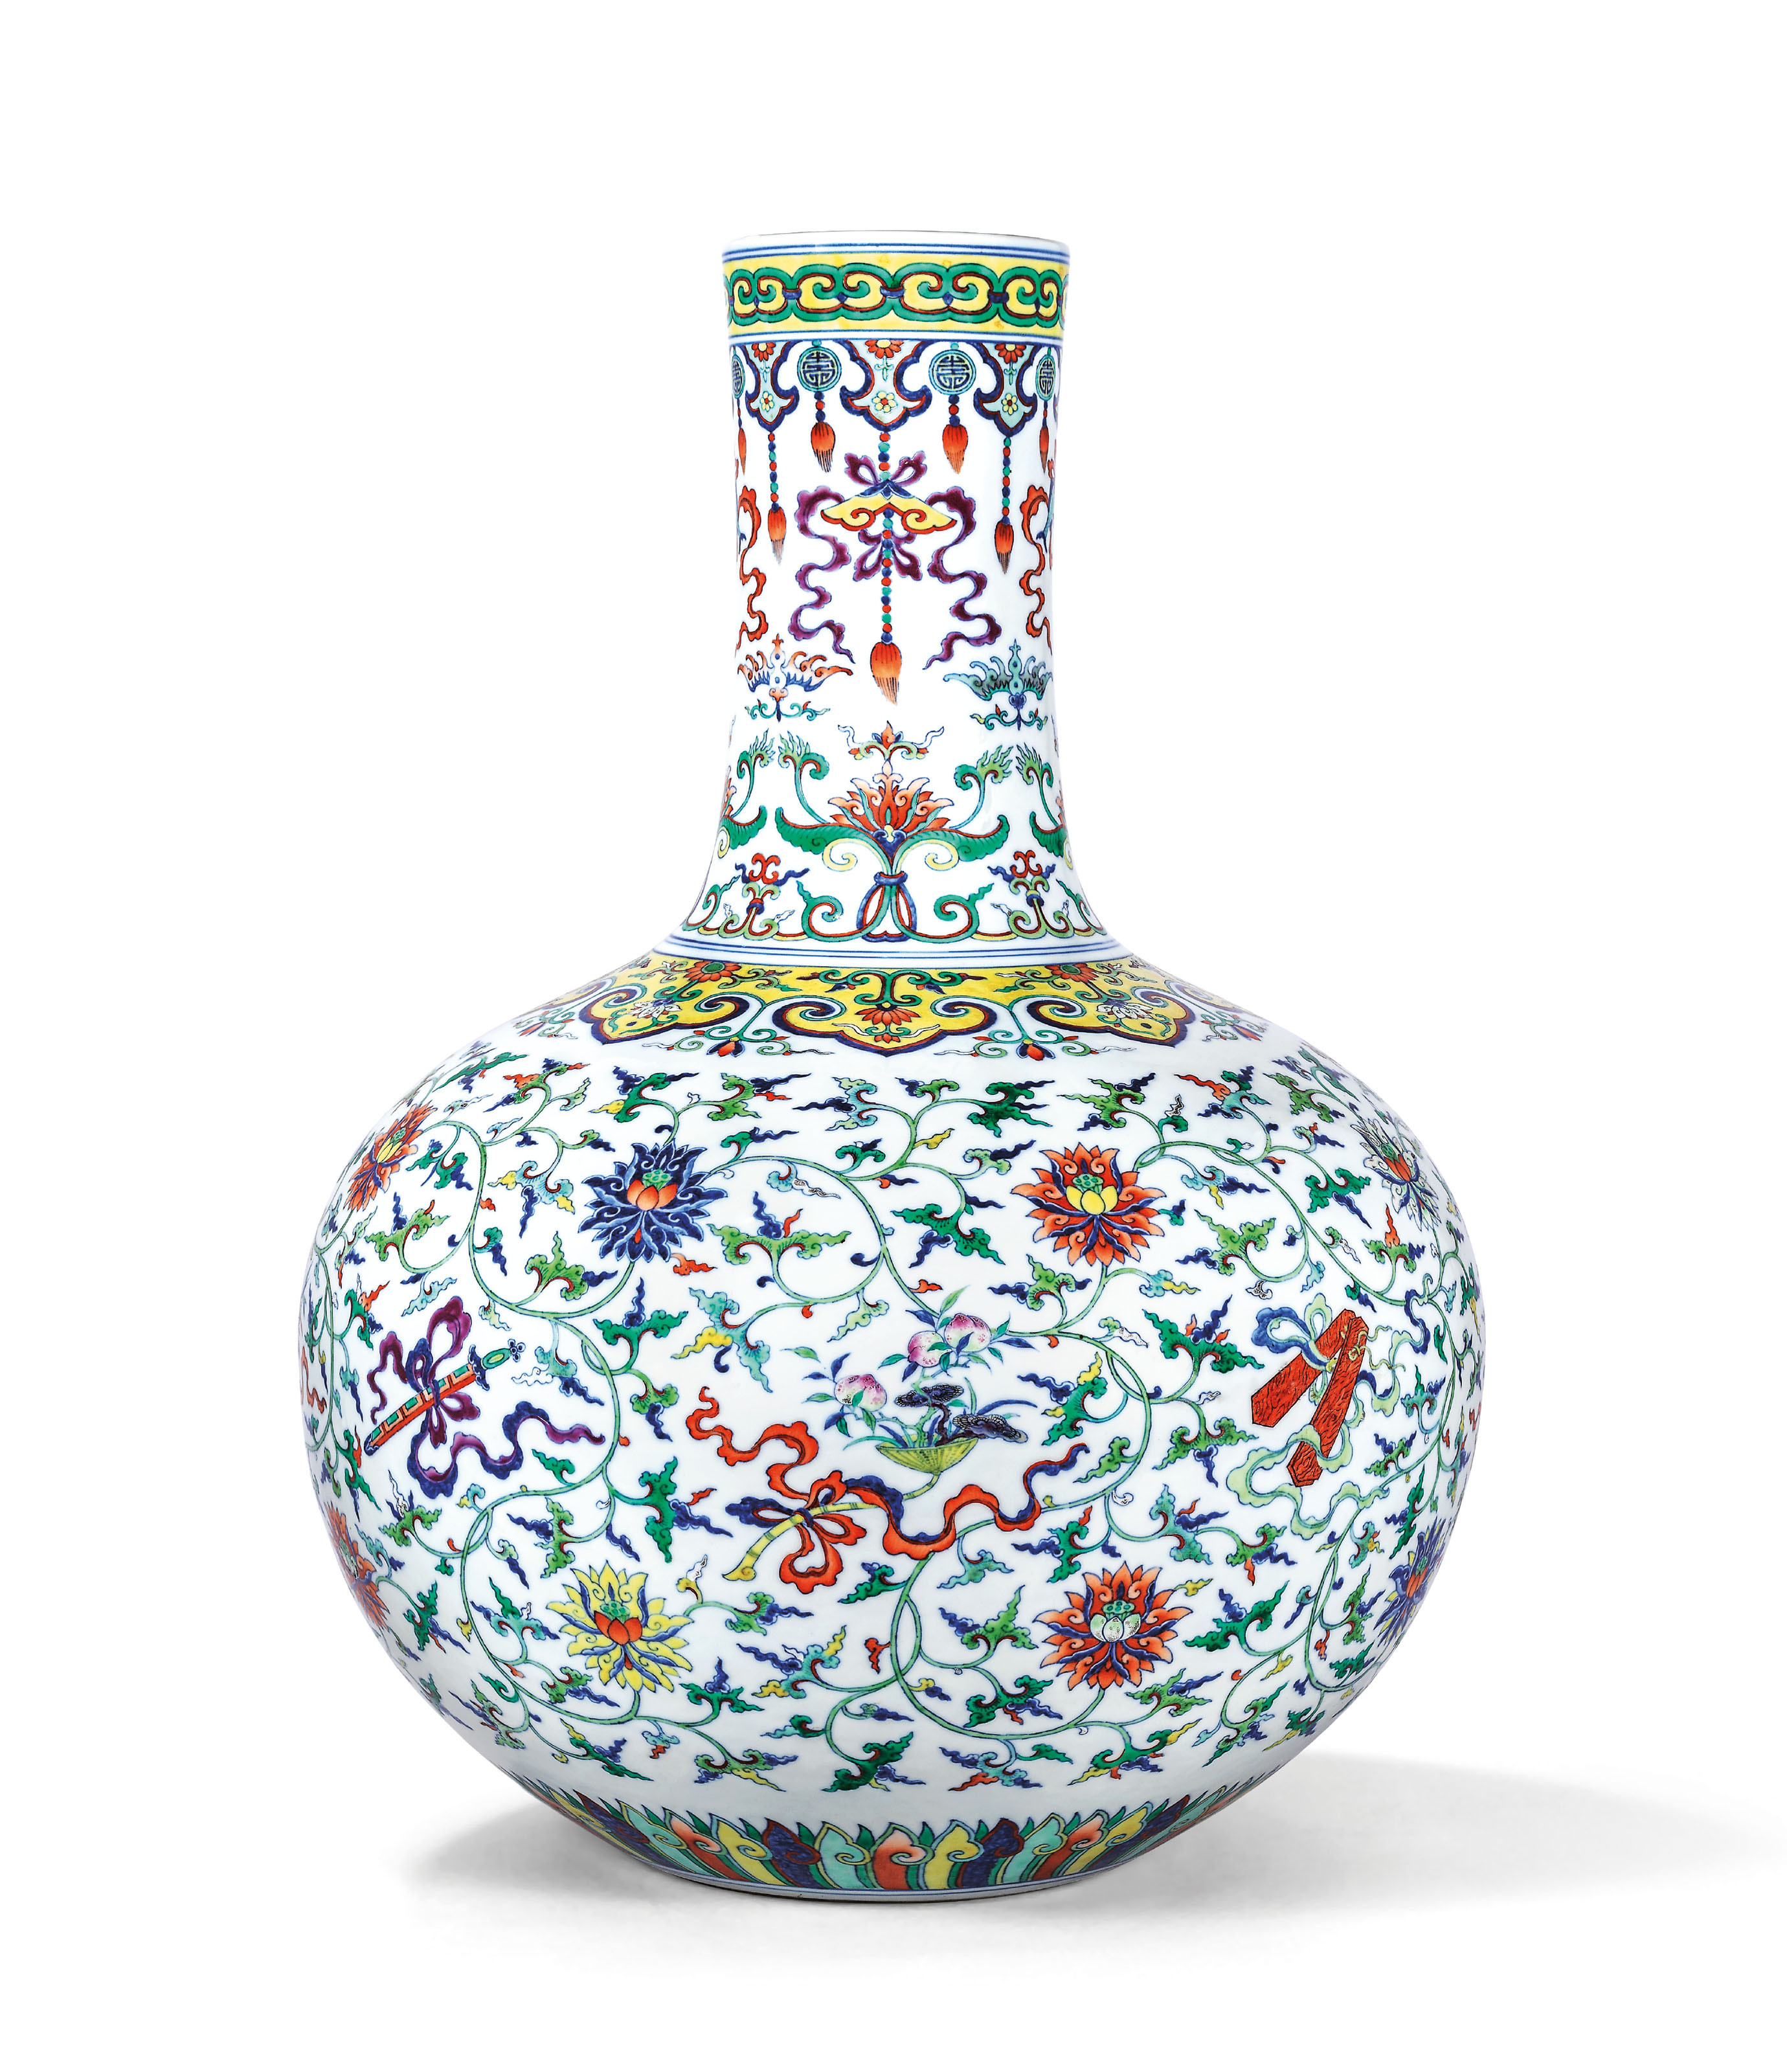 franklin porcelain woodland bird vase of chinese art pertaining to this rare chinese vase languished in storage at an oklahoma museum for over a decade then it sold for 14 5 million